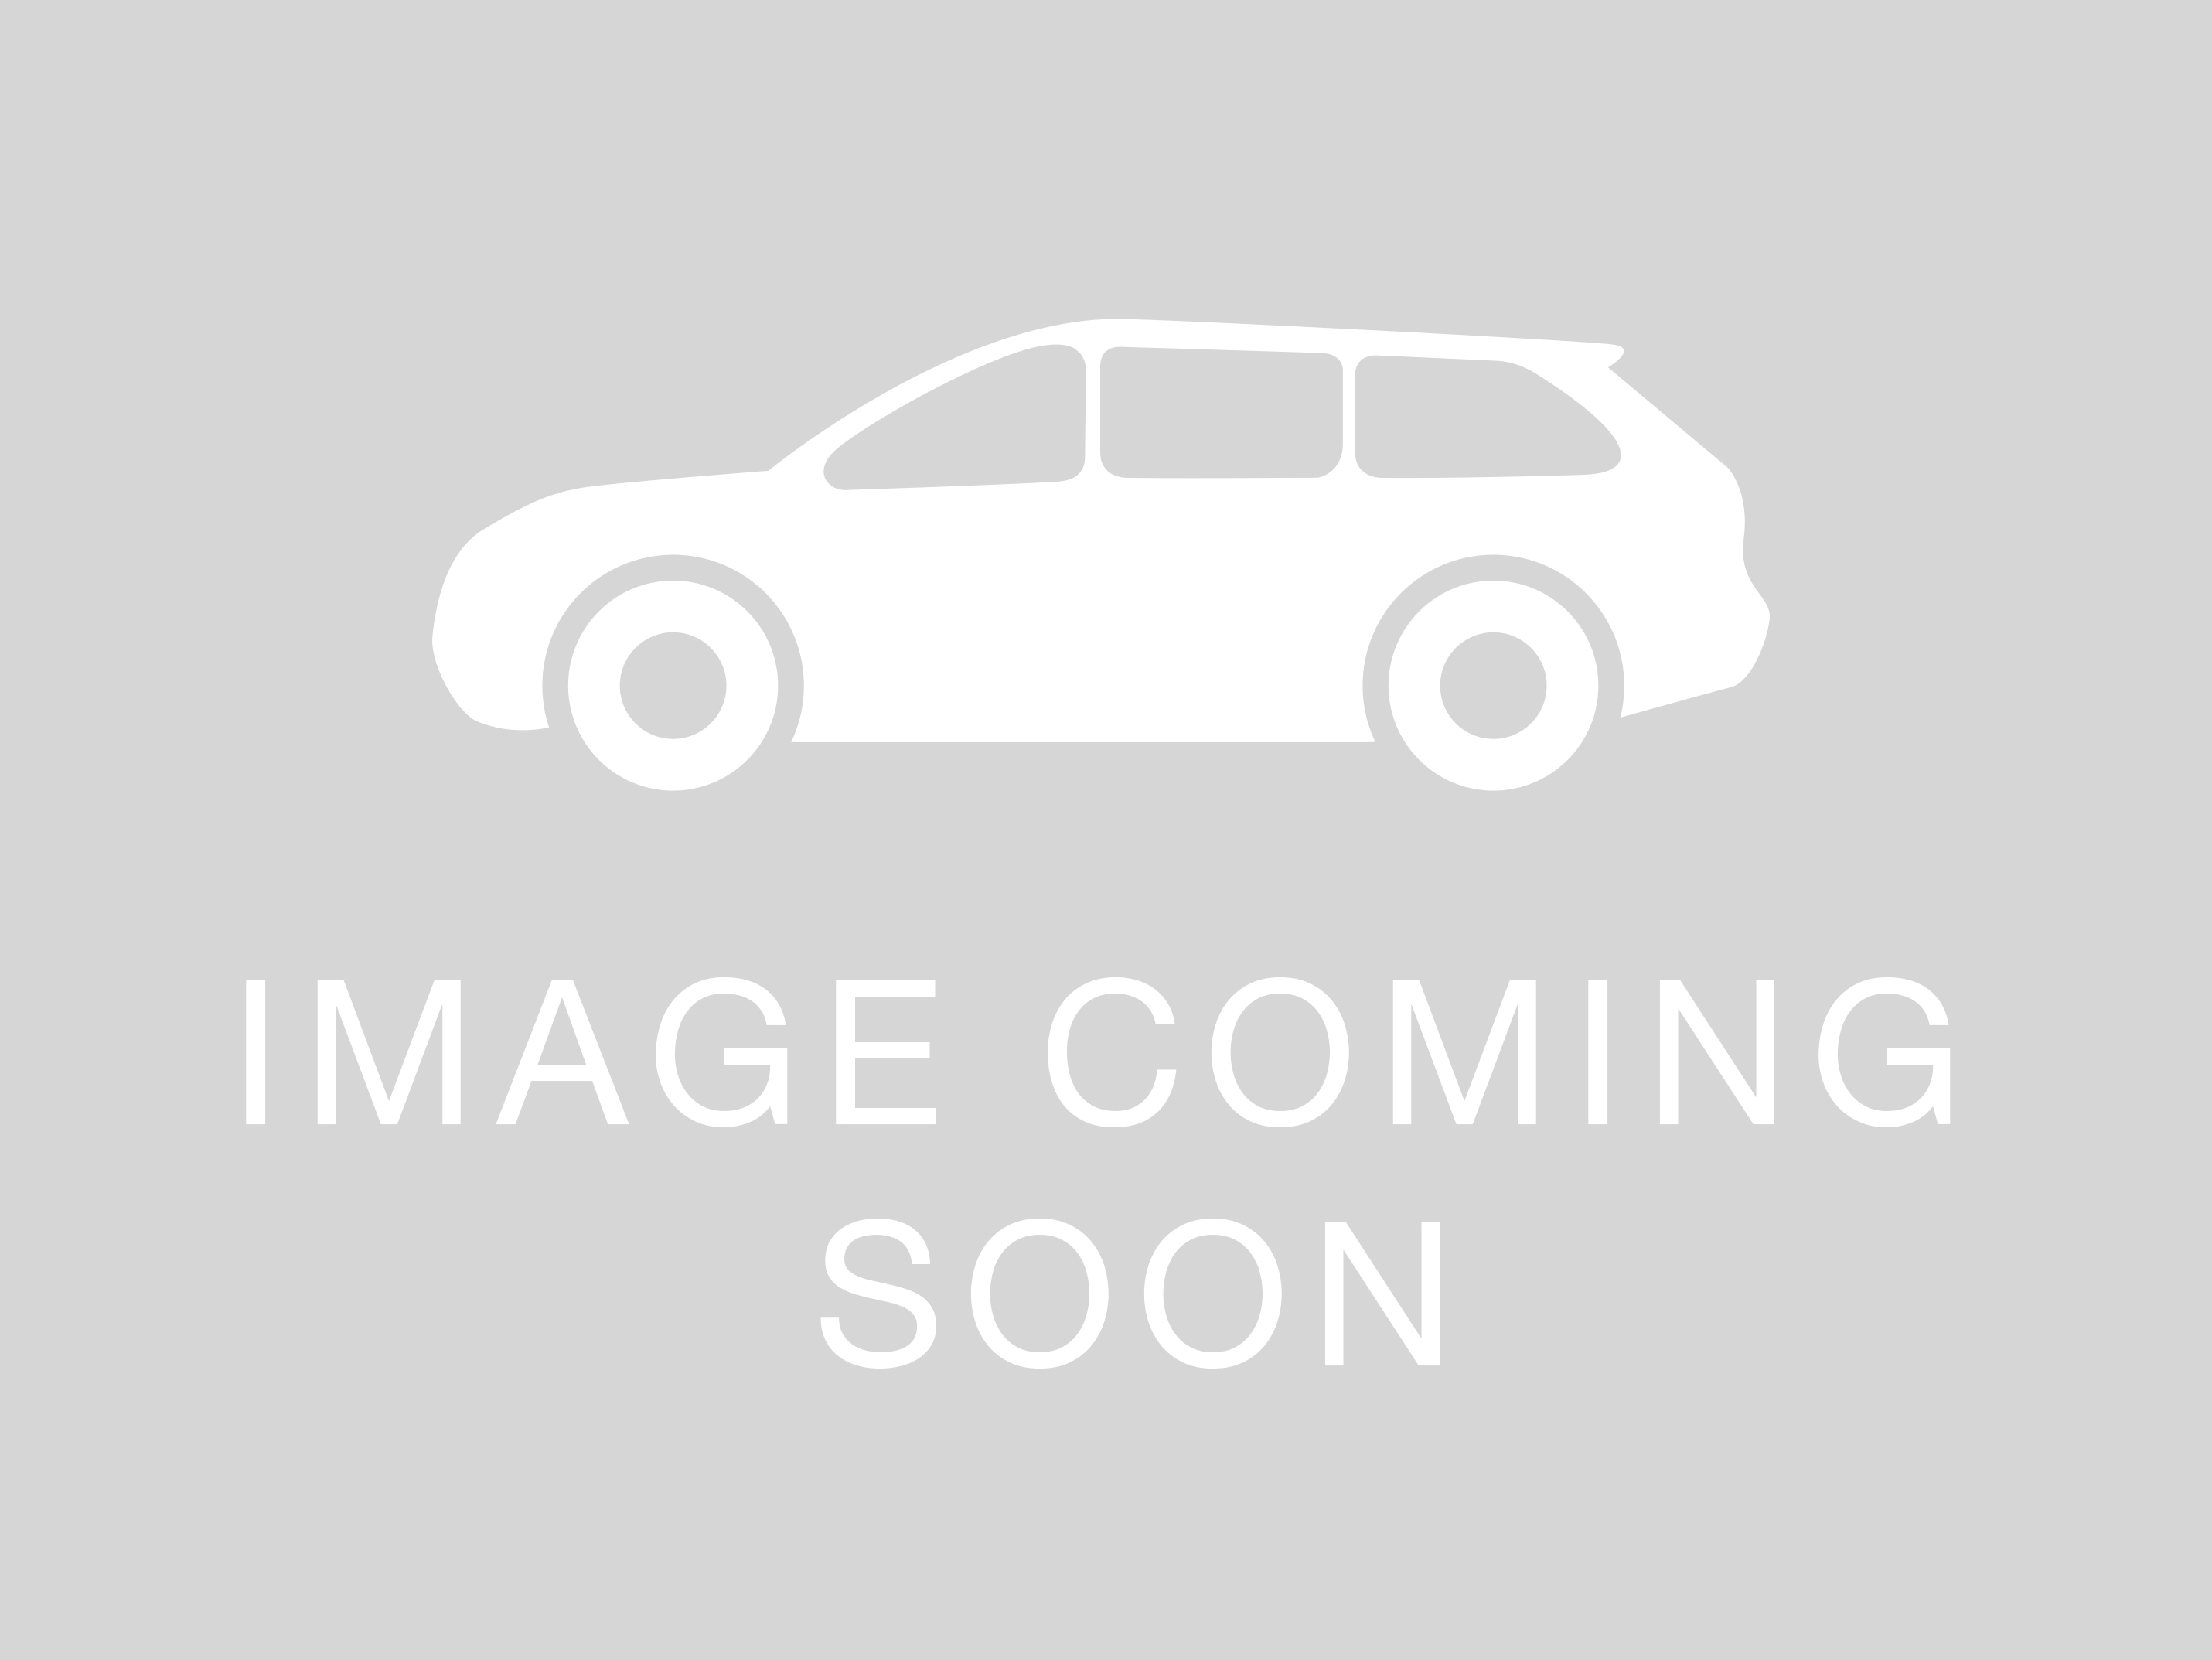 Ford Focus 2012  sc 1 st  John Andrew & Used Cars - John Andrew | New Used and Demonstrators Ford Mazda ... markmcfarlin.com